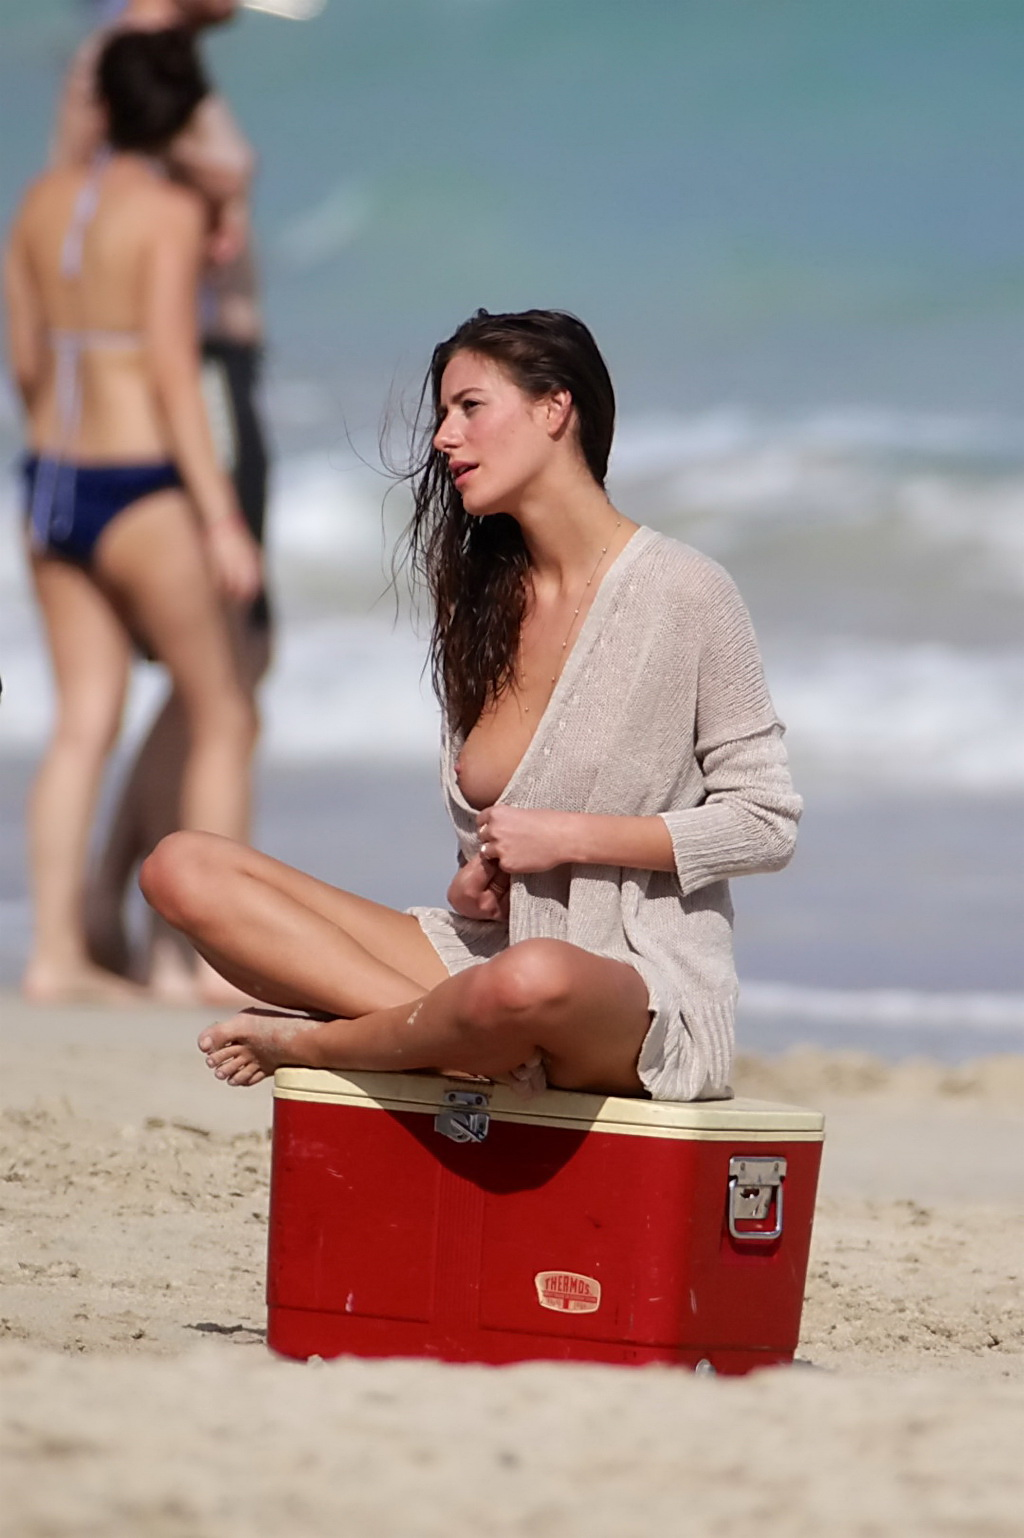 alejandra guilmant topless amp wet see through top photoshoot at miami